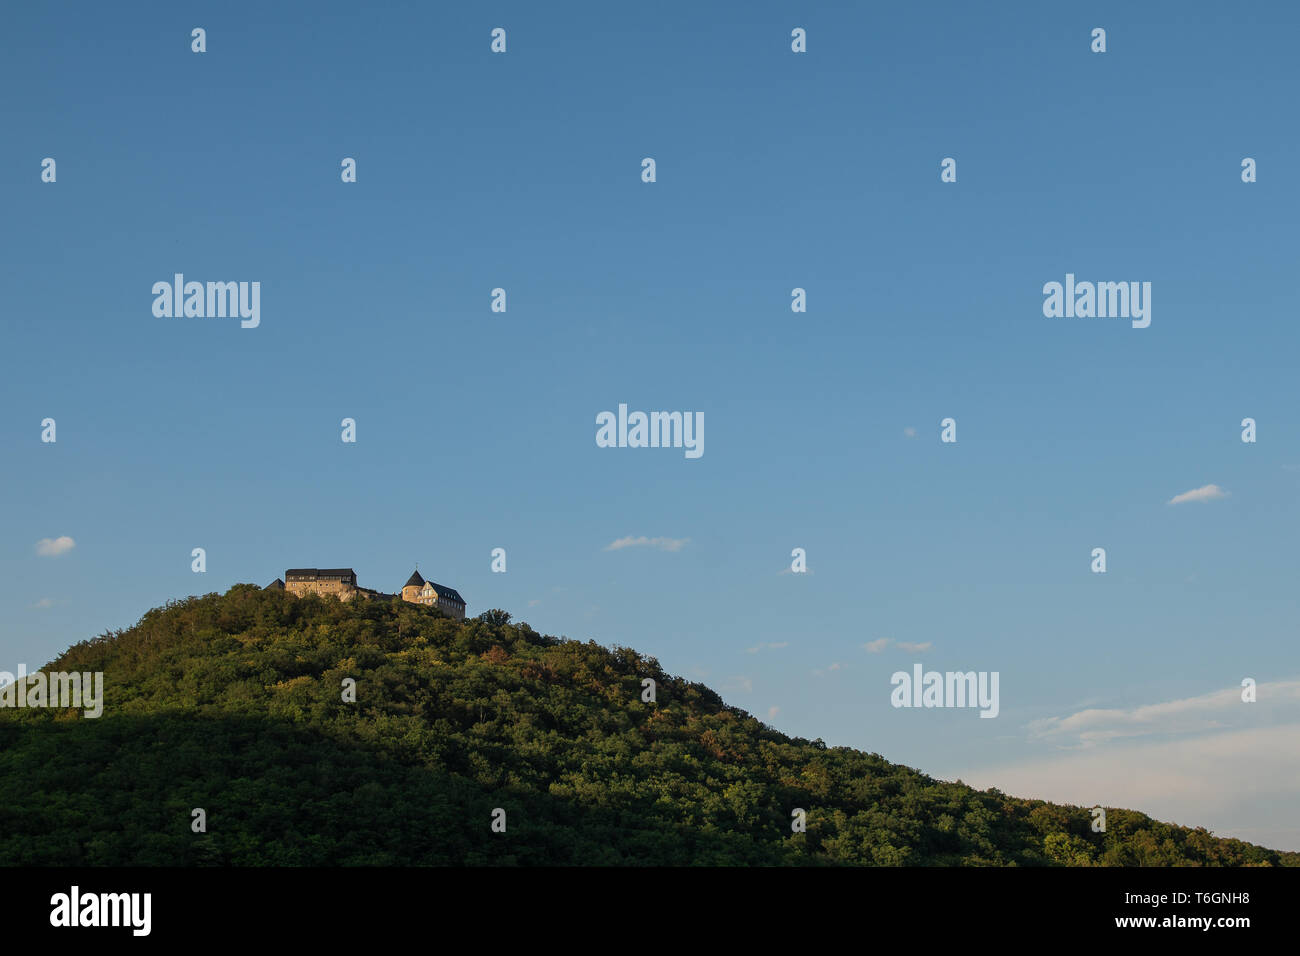 Castle Waldeck in Germany in the evening sun - Stock Image